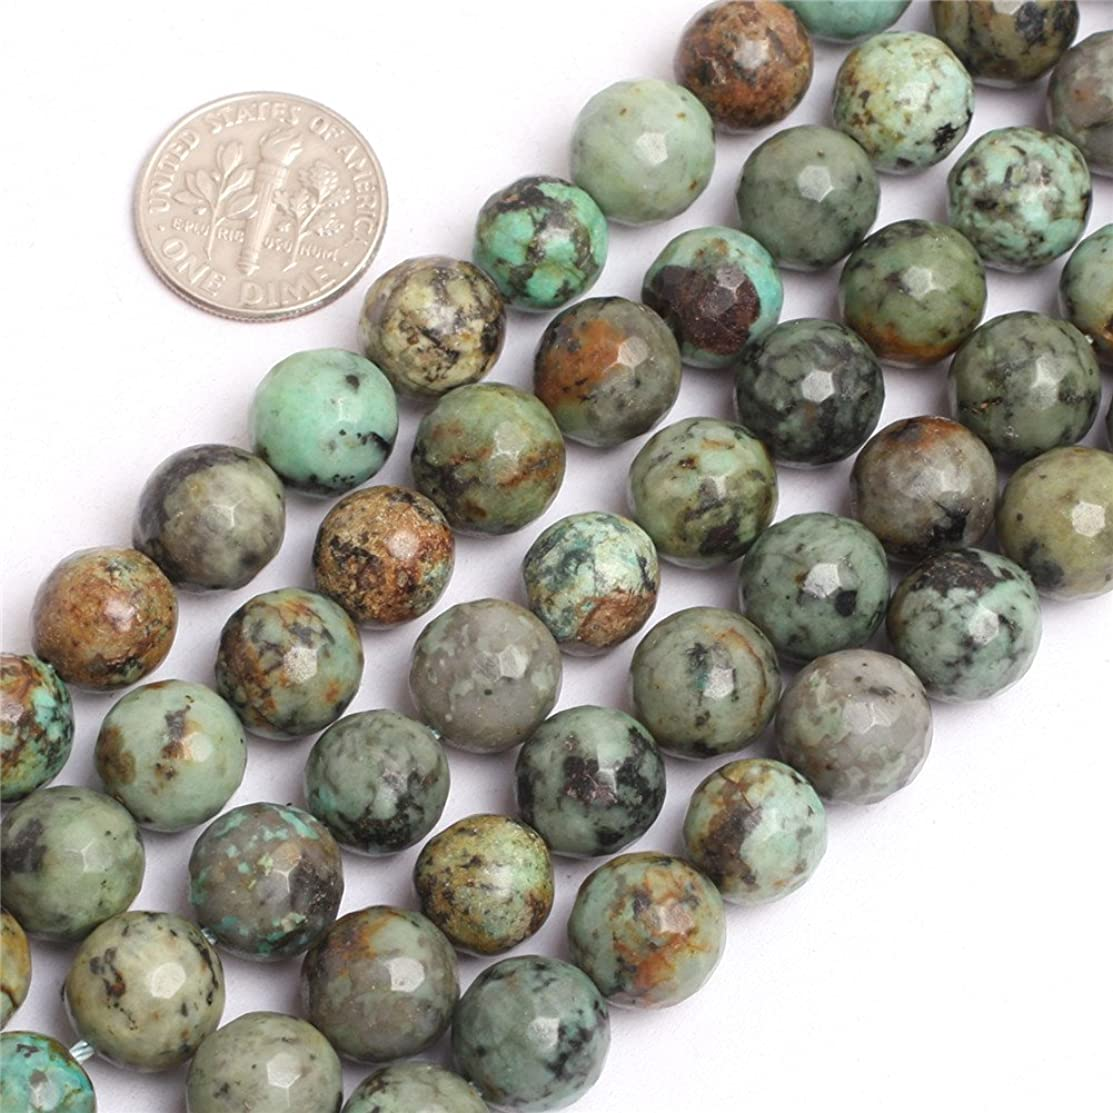 JOE FOREMAN 10mm Africa Turquoise Semi Precious Gemstone Round Faceted Blue Loose Beads for Jewelry Making DIY Handmade Craft Supplies 15